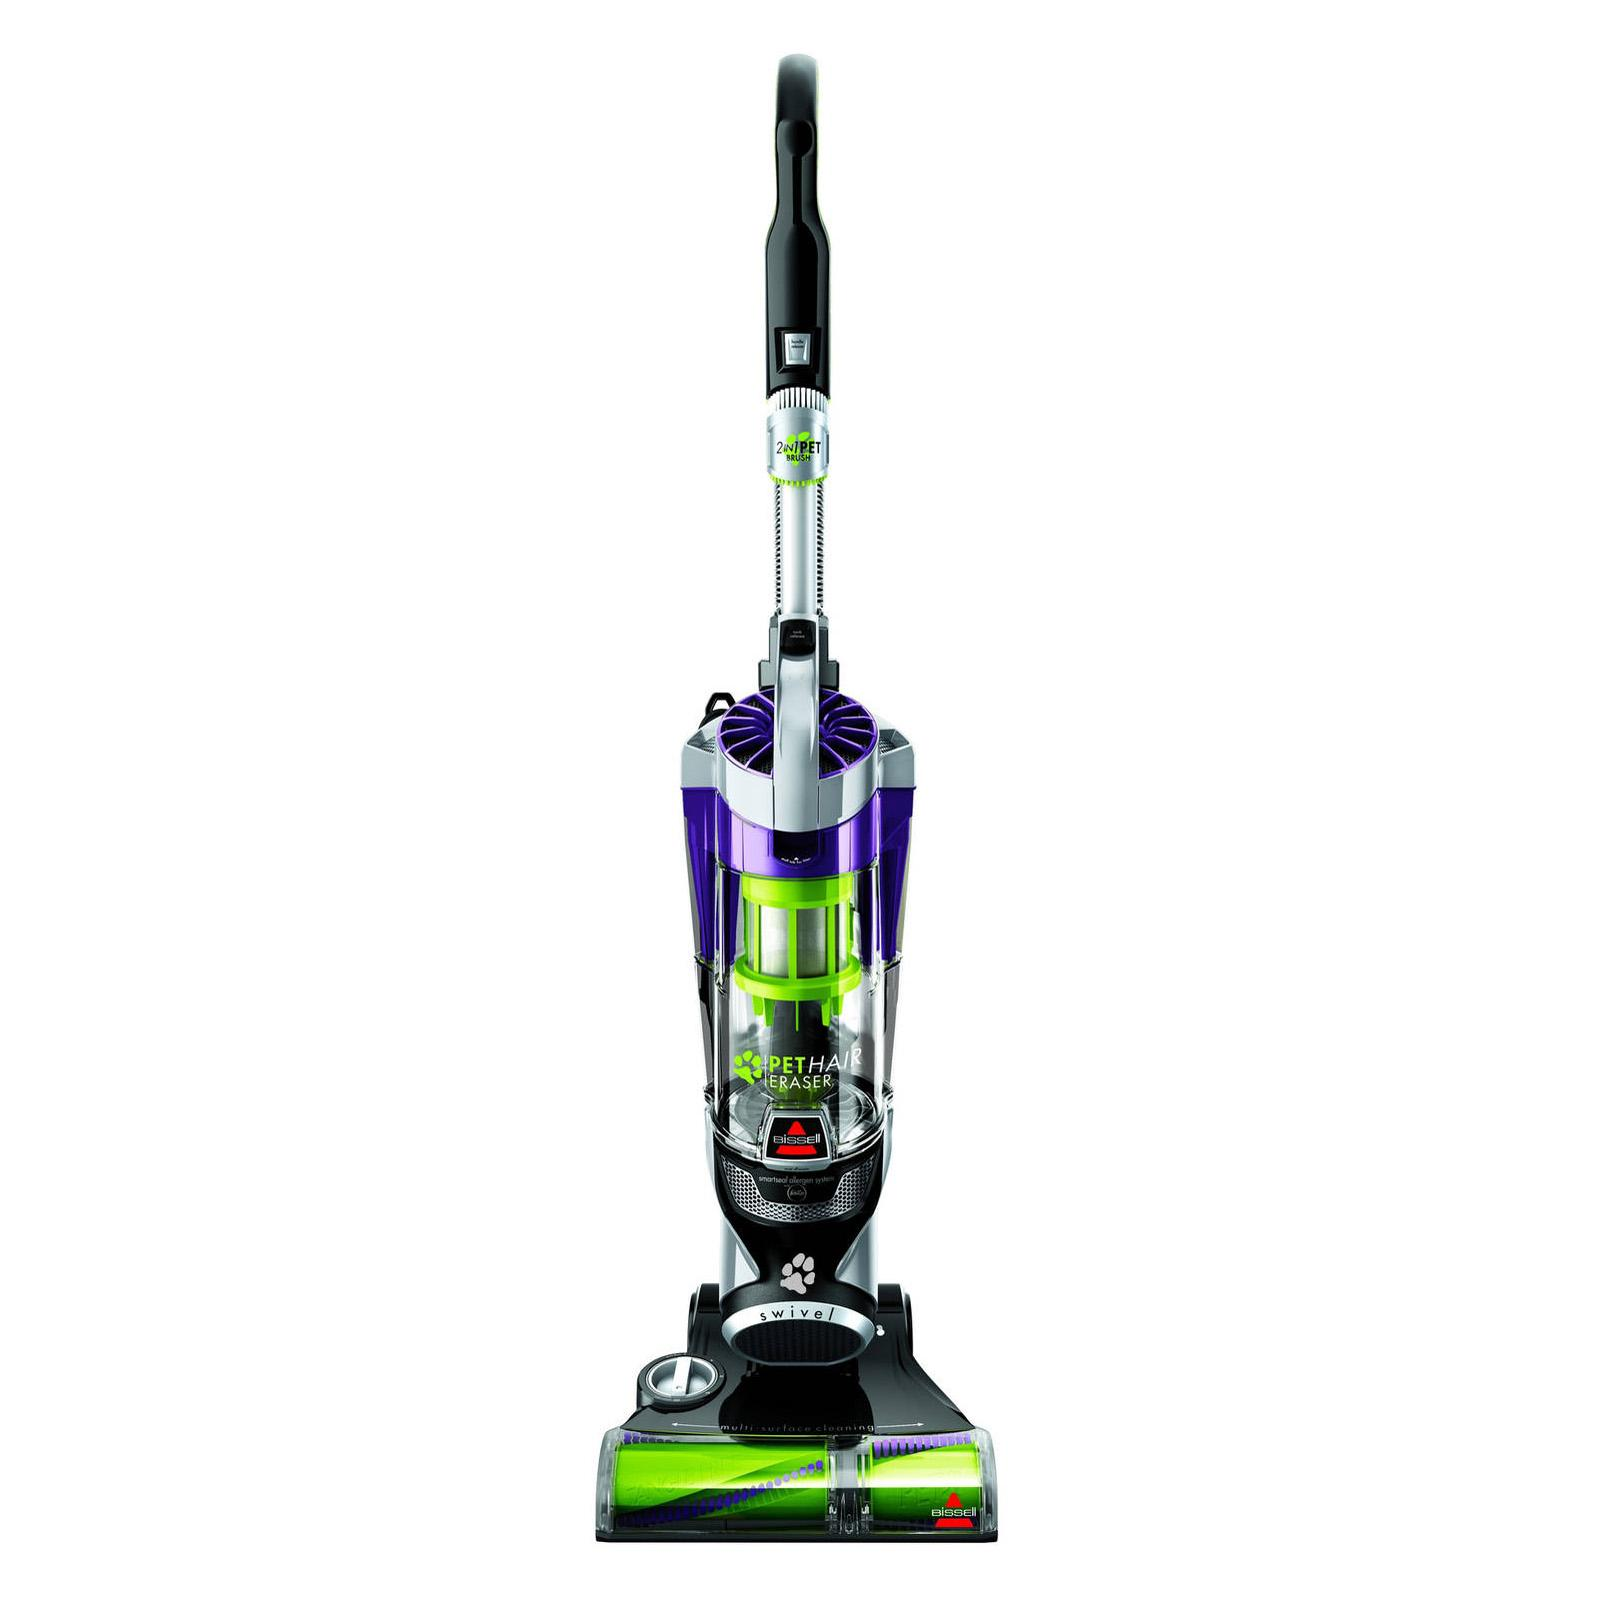 Bissell 1650W Pet Hair Eraser Upright Vacuum - 6BAB9074E6...